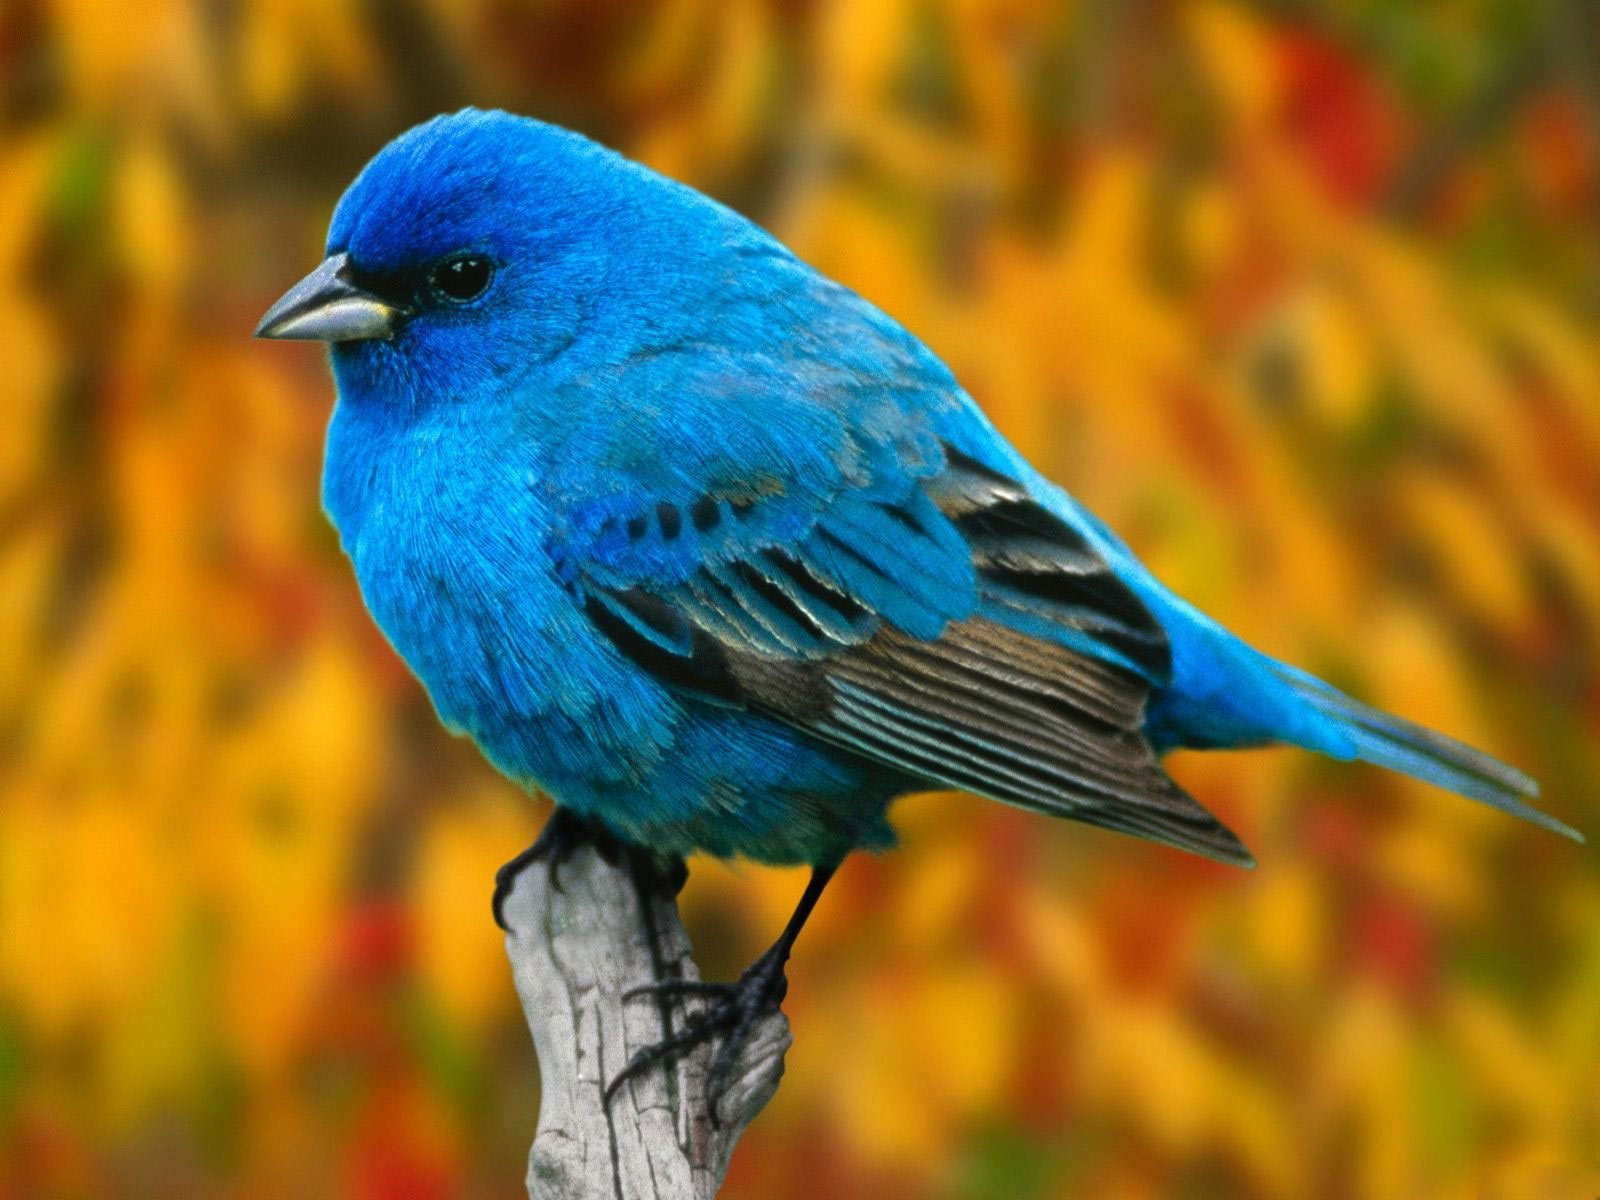 Free Bluebird Wallpaper For Desktop: Animals Zoo Park: Birds Desktop Wallpapers, Bird Beautiful